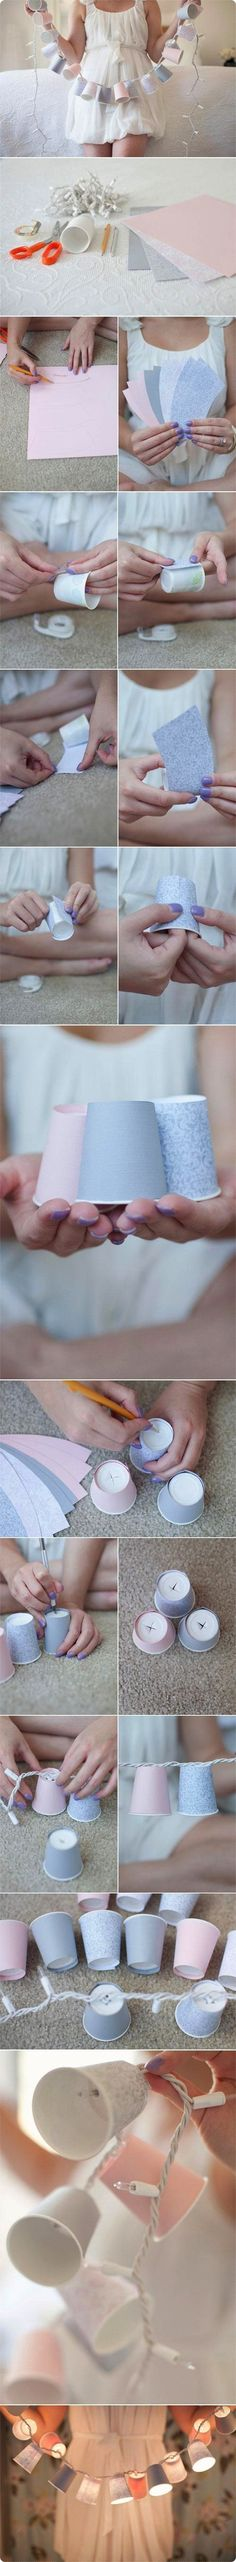 DIY cute paper cup lights